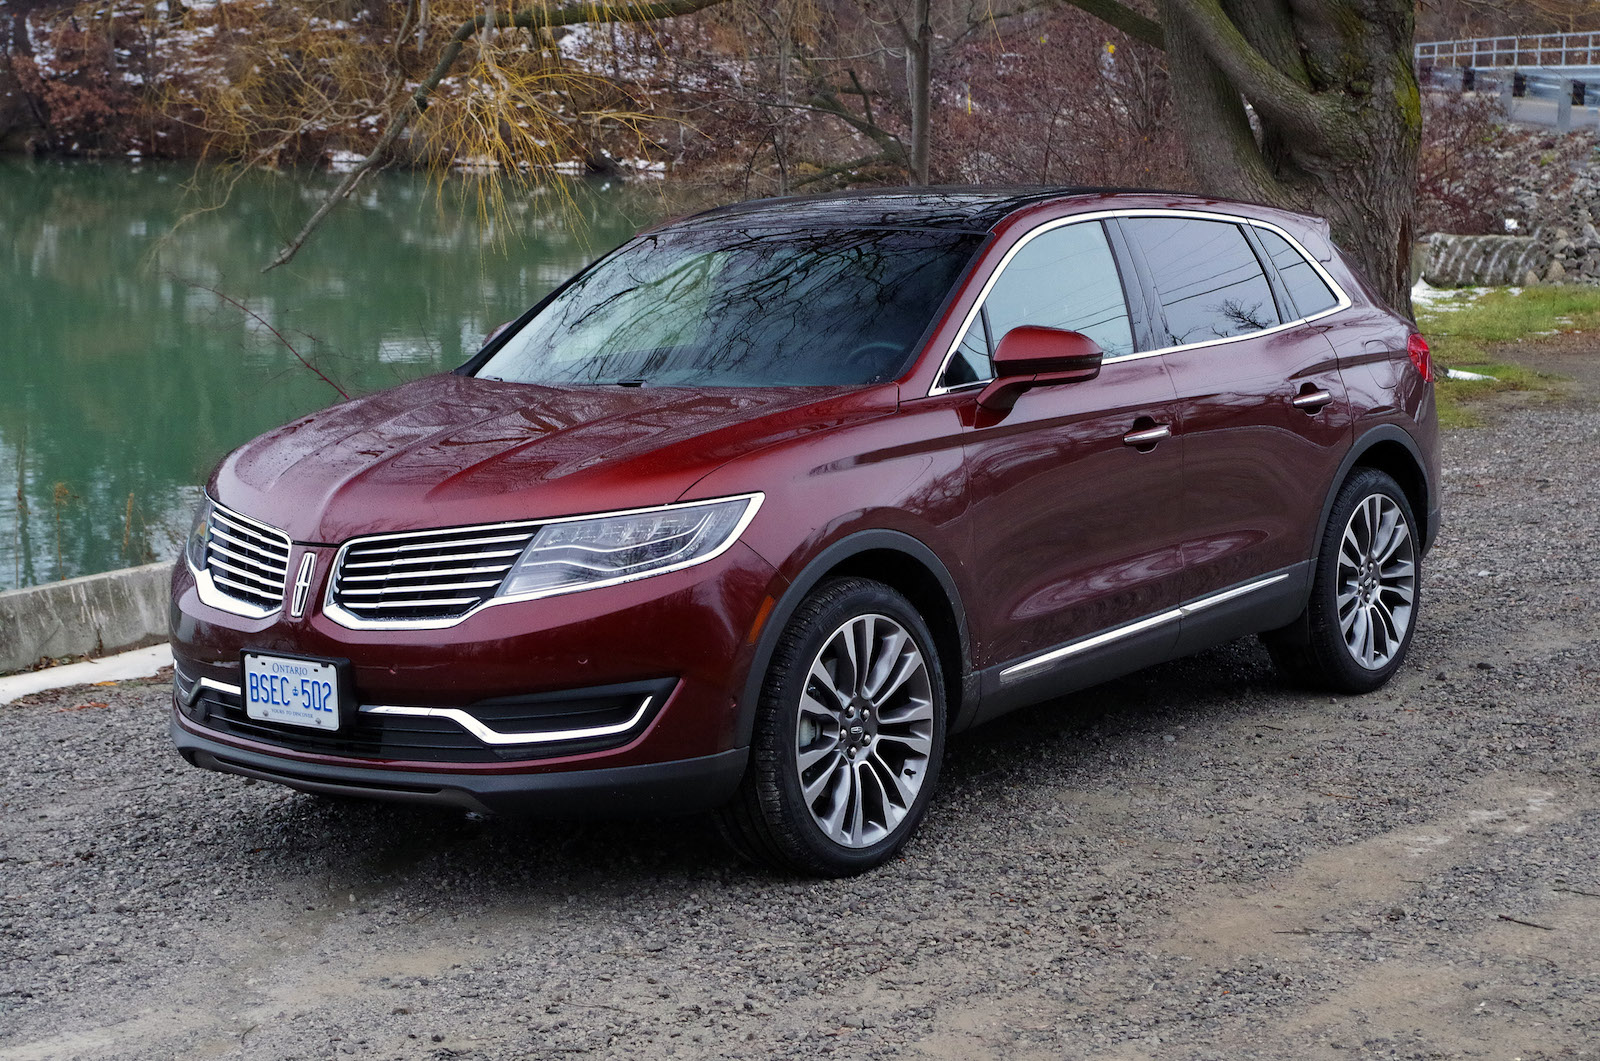 suv cro f atc news reports gs drive htm mkx lincoln first consumer index